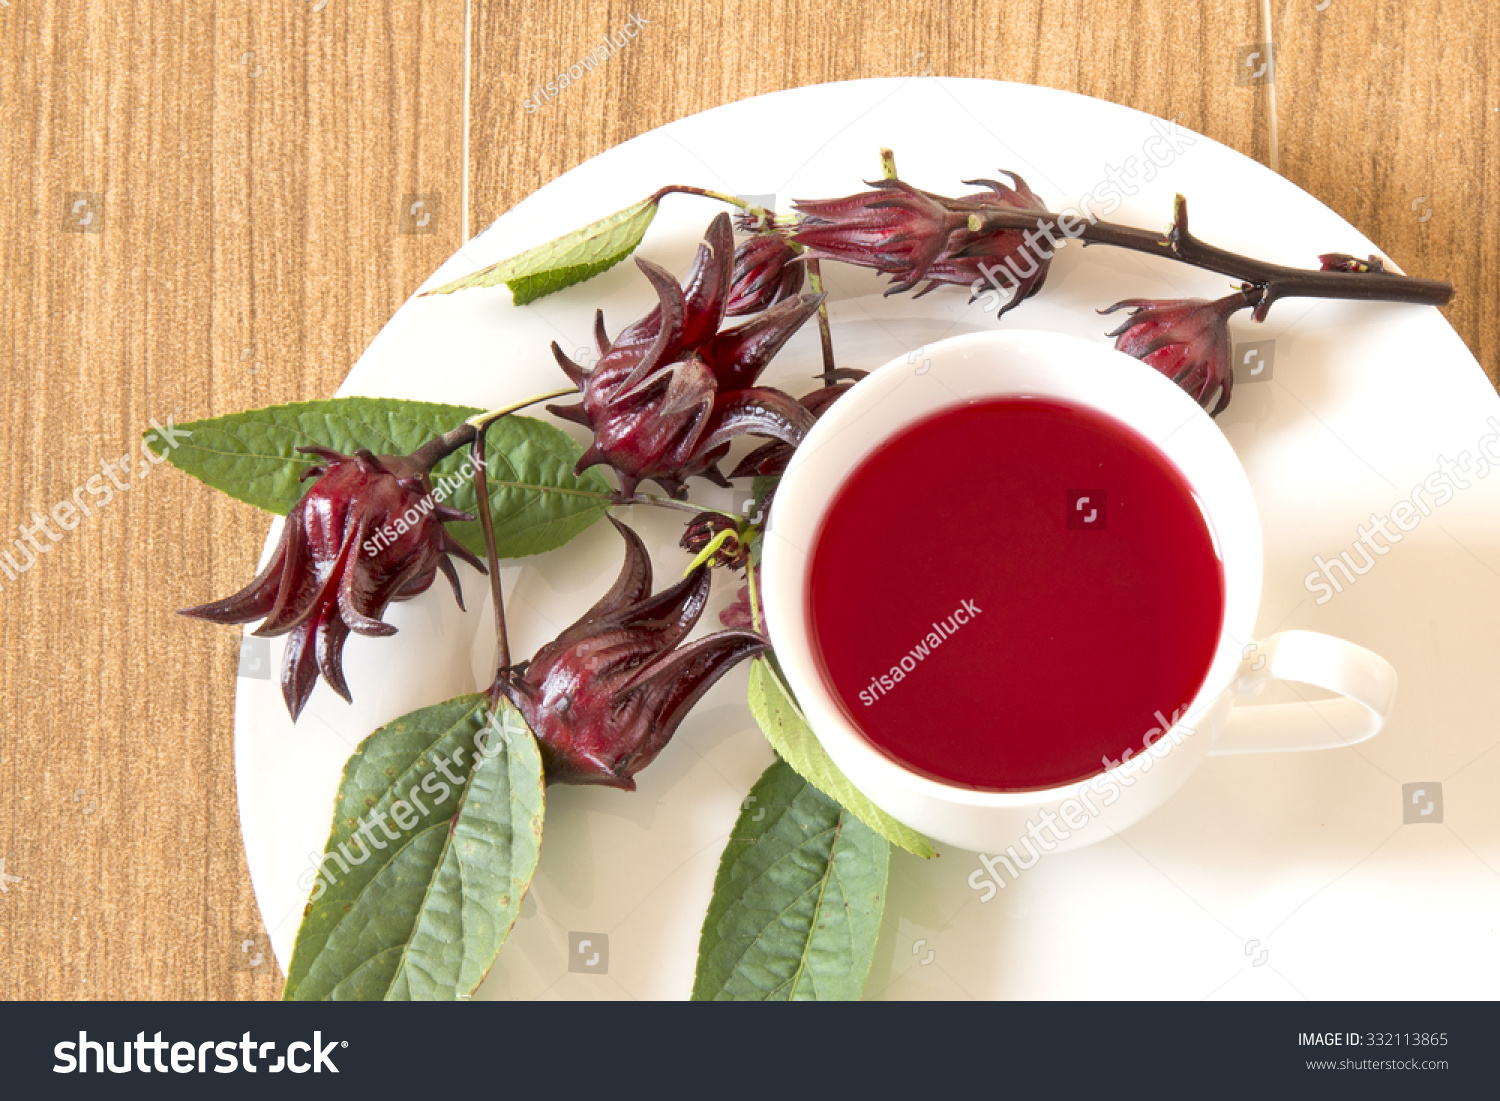 Rosella Tea In A White Cup Stock Photo 332113865 ...